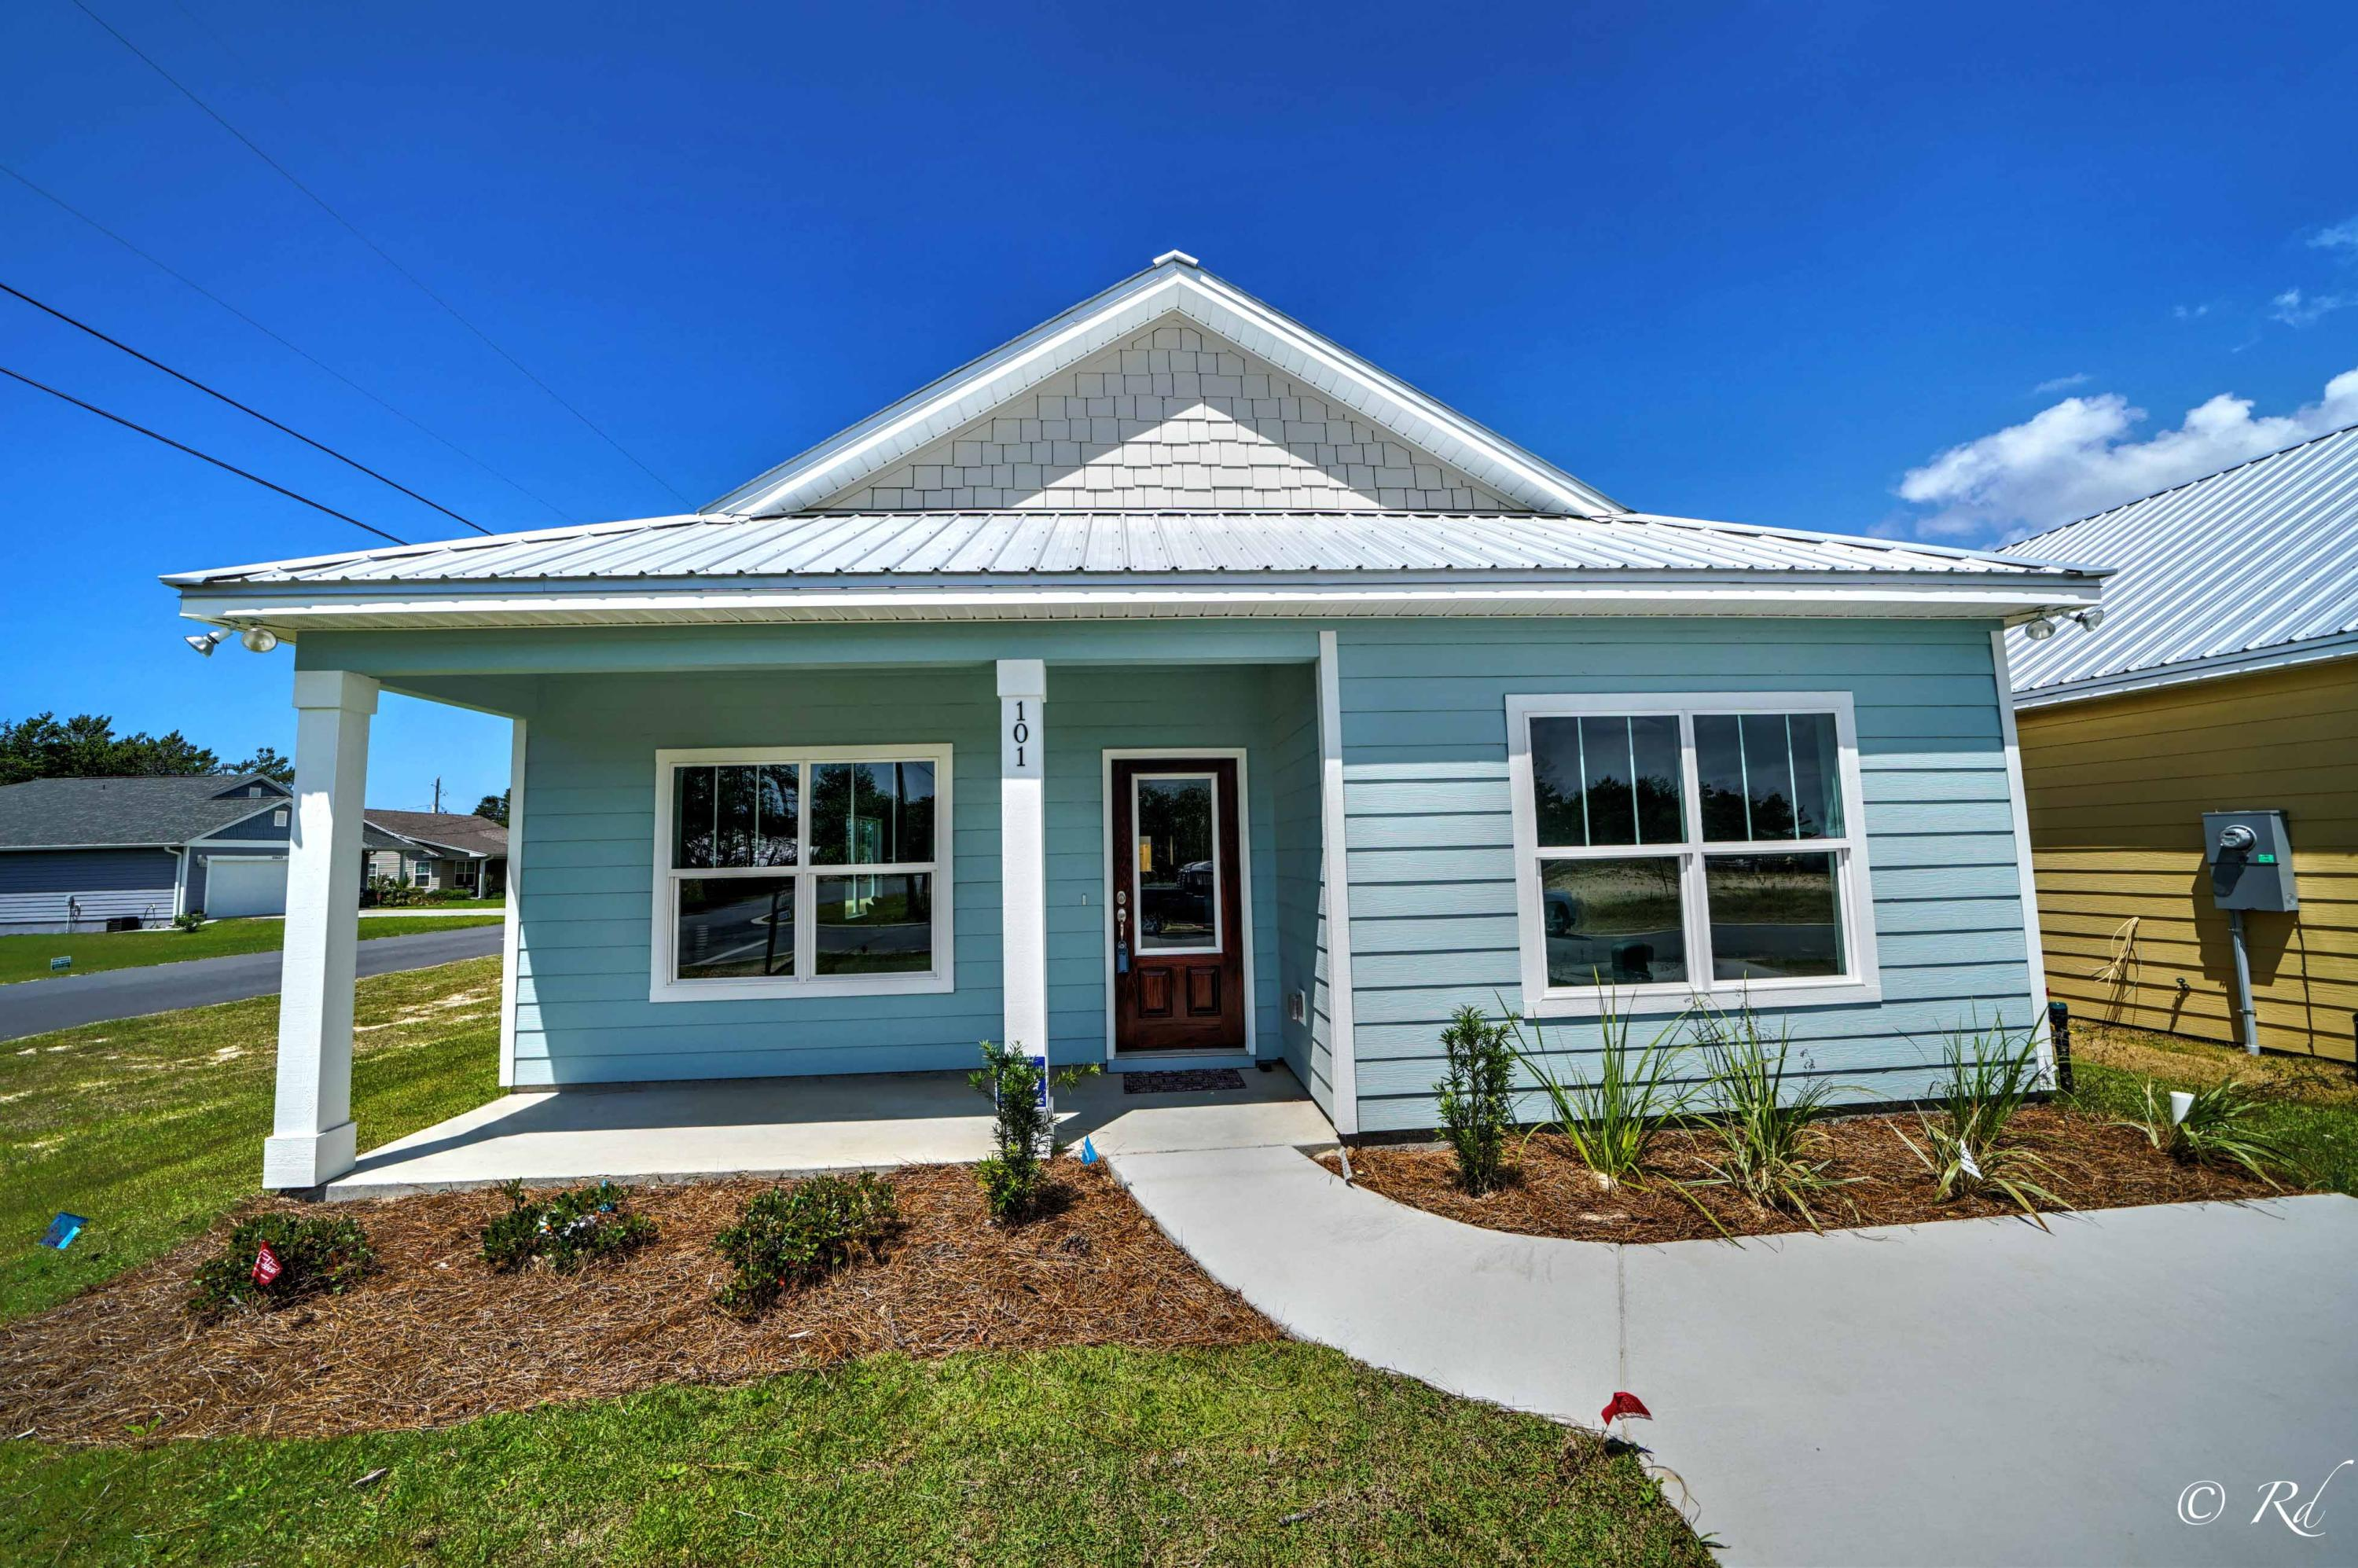 TODAY is the day that you can realize your dream of owning your own BRAND NEW Beach Home, just steps away from Lake Powell and a short walk to the Worlds Most Beautiful Beaches of Panama City Beach and the Beaches of 30A. Osprey Pointe at Powell is a new 17 home subdivision at the west end of Panama City Beach. These homes are ''Coastal Cottage Cuties'' in a golf cart friendly community with Hardy-Board siding, metal roofs and quality construction. Granite countertops in kitchen, Stainless appliances and ''above builder grade'' fixtures and flooring. See Additional pics for floor plan information and videos of model home and drone footage through links. Directions are not on Google - see listing